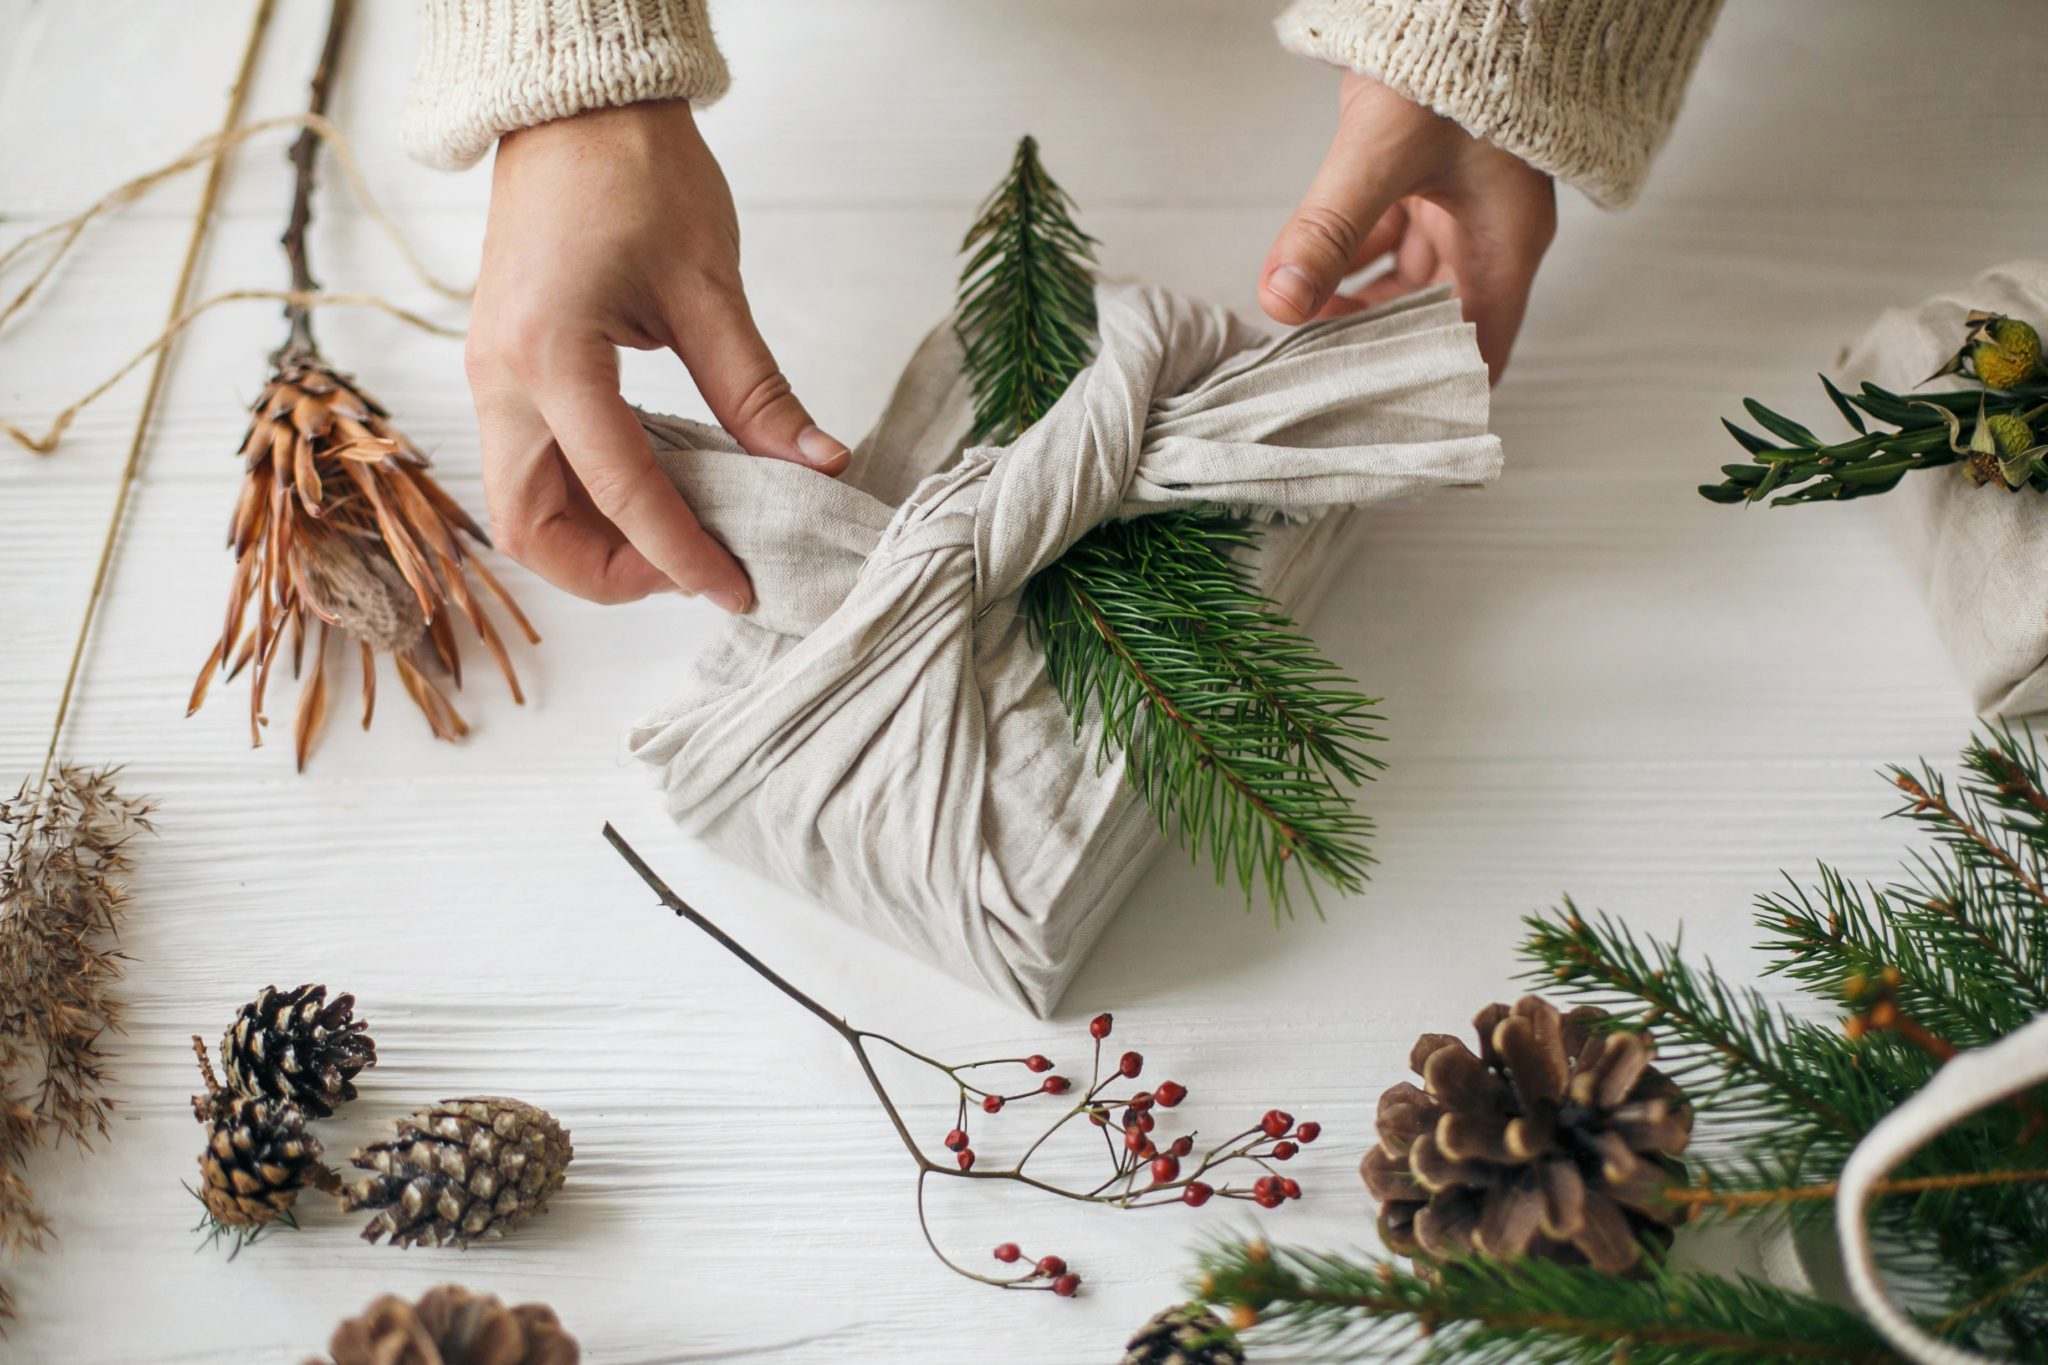 eco-wrapping fabric wraps and foliage